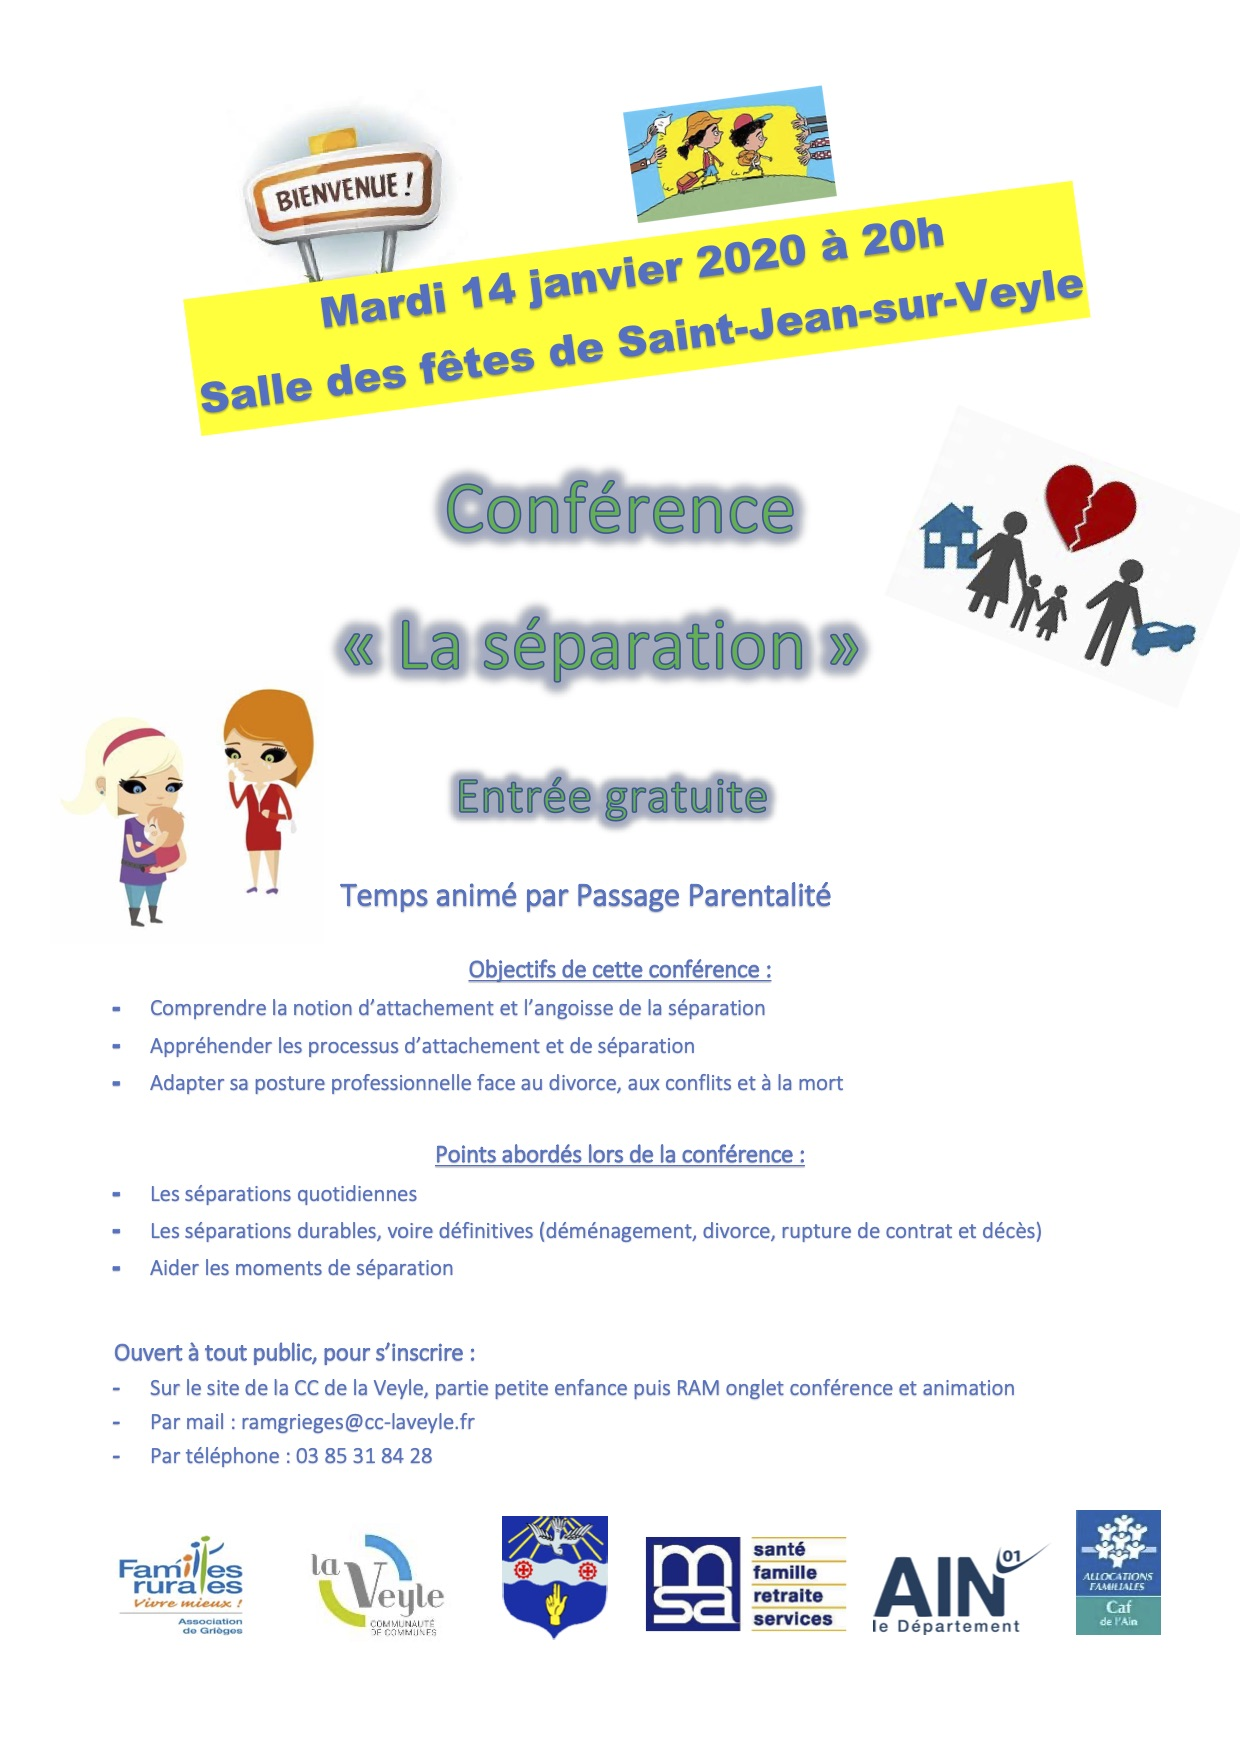 Soiree Conference sur le theme de la separation